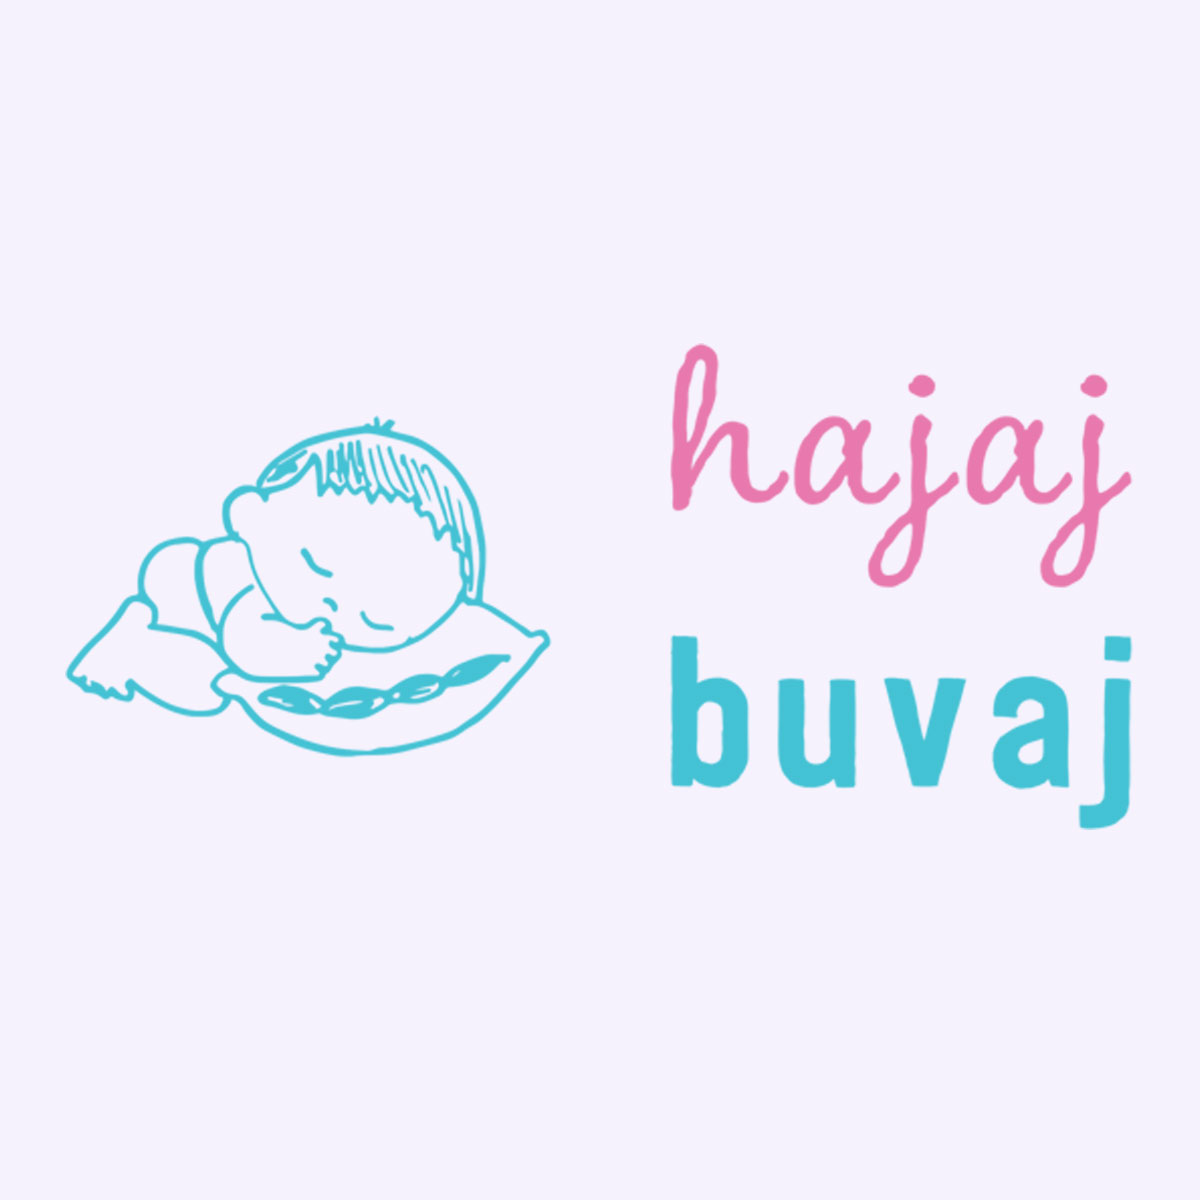 hajaj-buvaj-dm4you